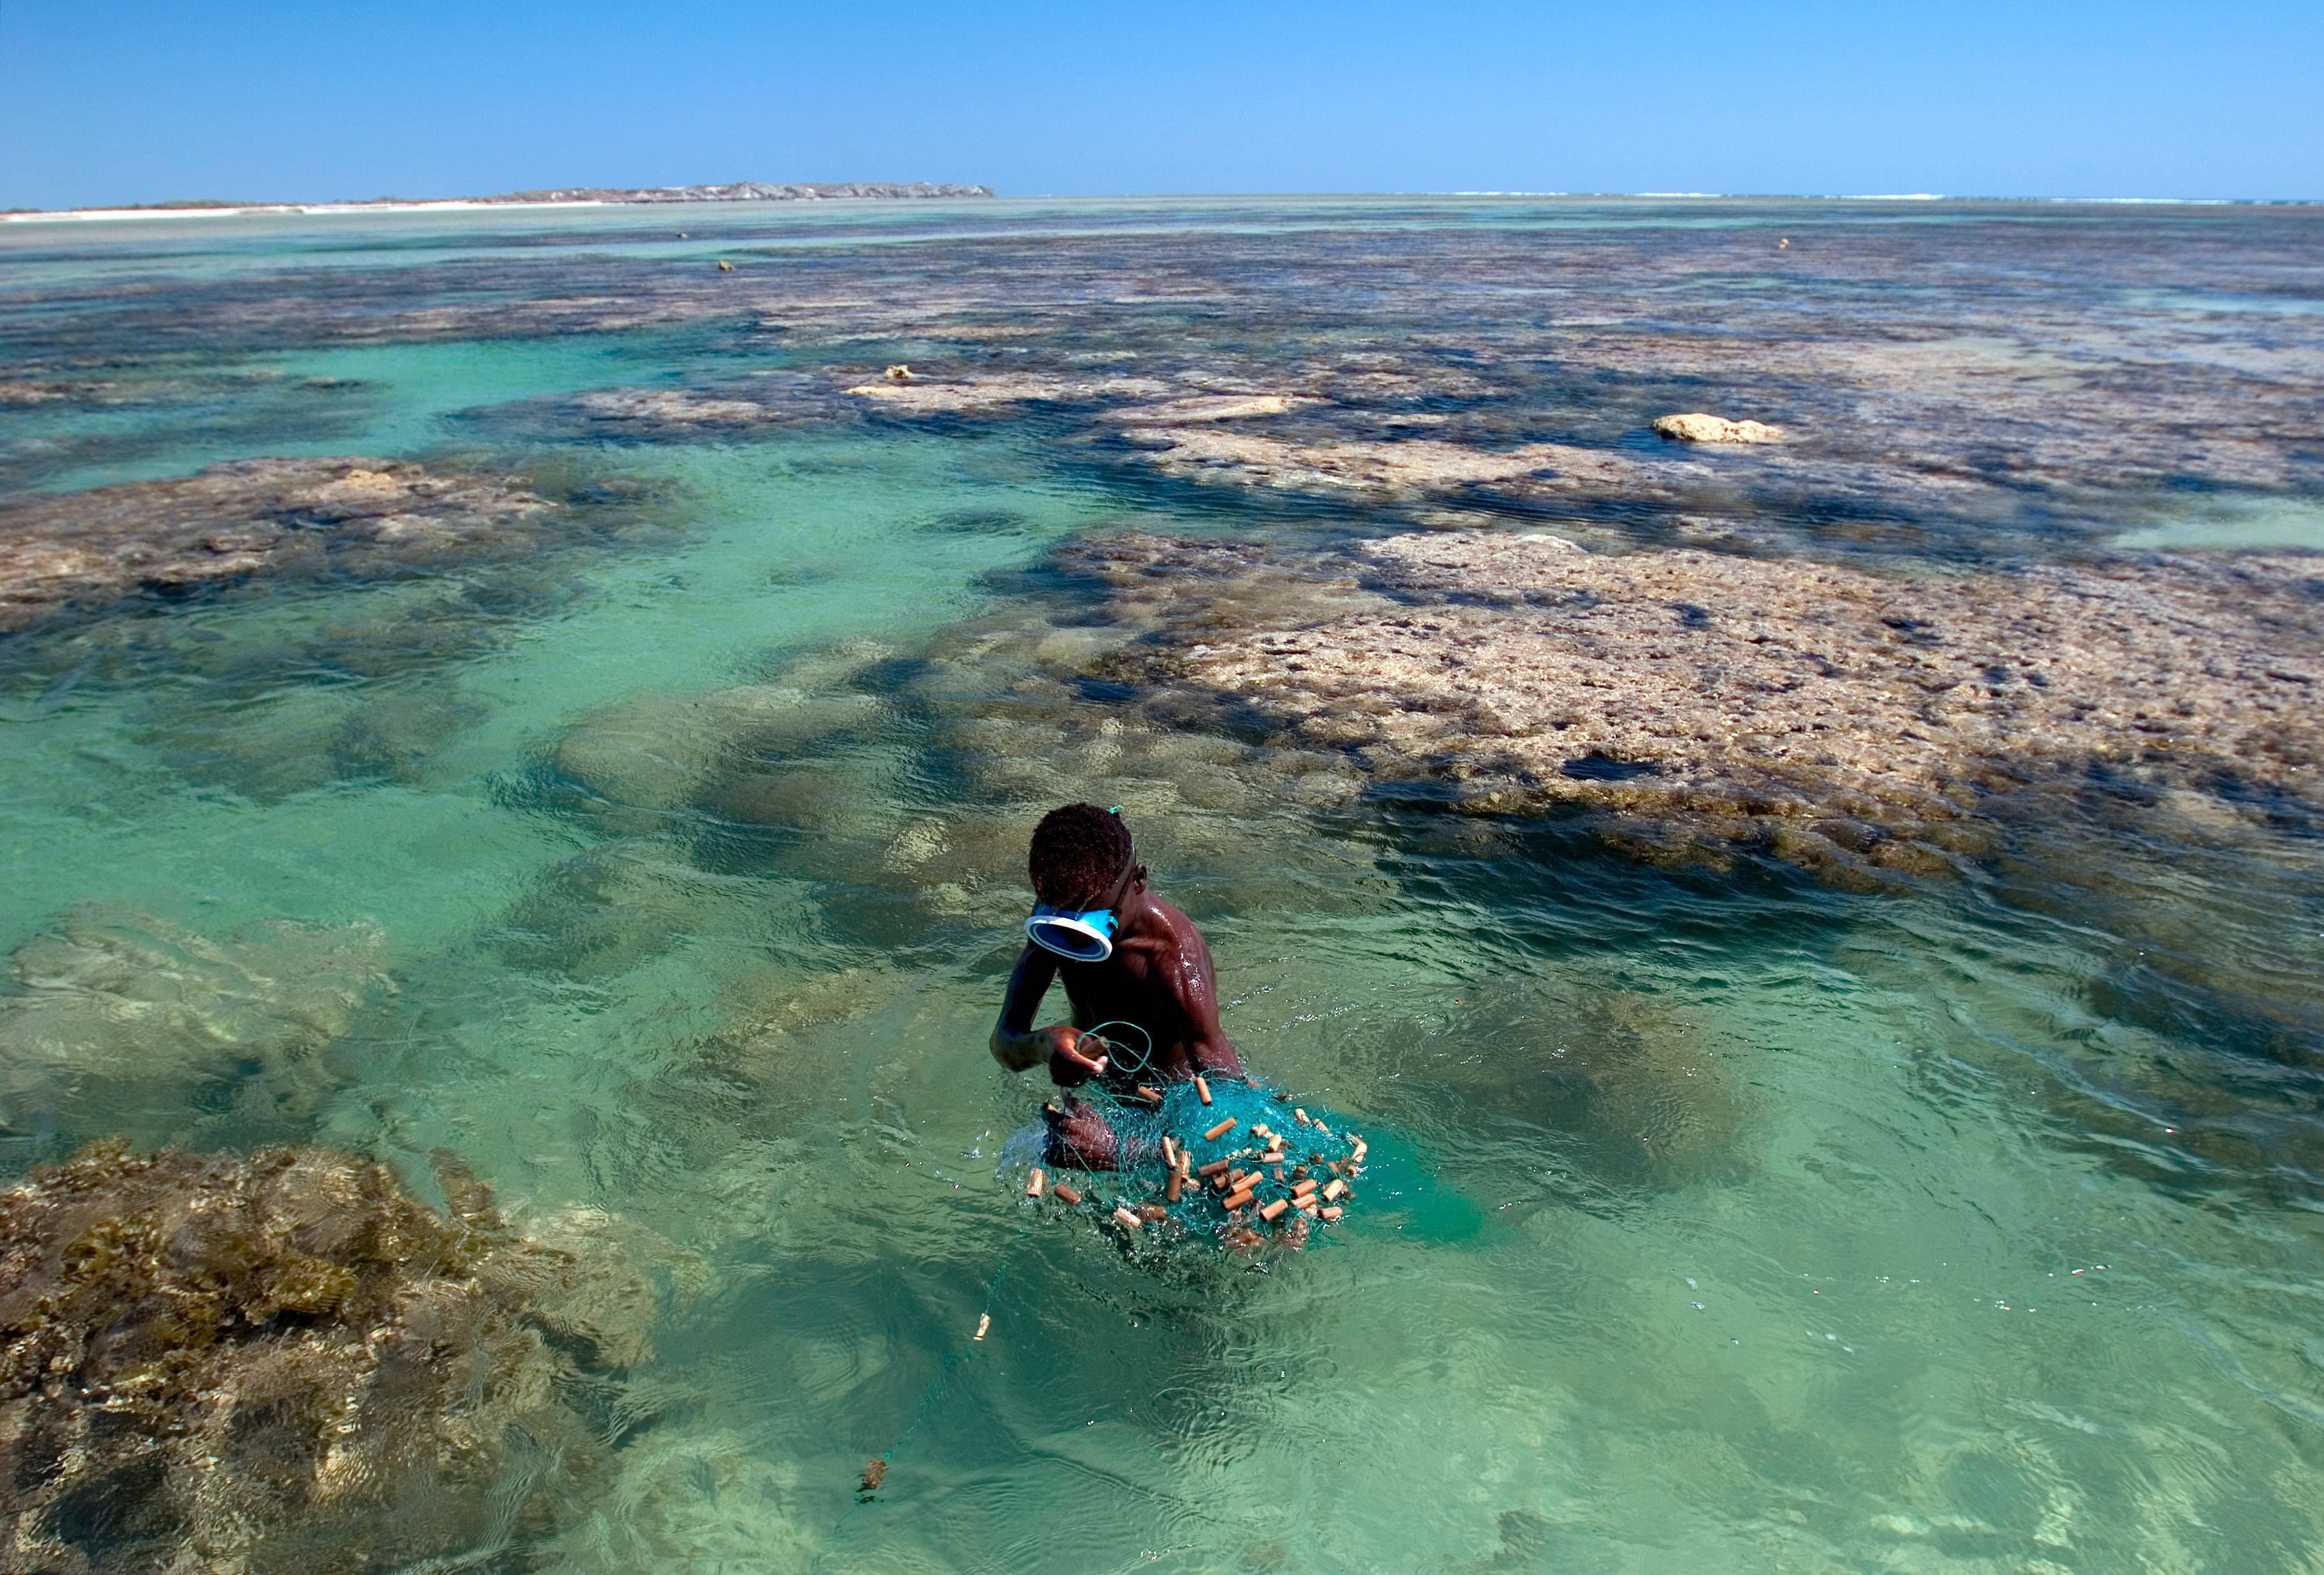 For Madagascar's semi-nomadic Vezo communities, fishing is more than a job. On the island's Mozambique Channel coast, fishing is the basis of Vezo cultural identity. Photo: Garth Cripps